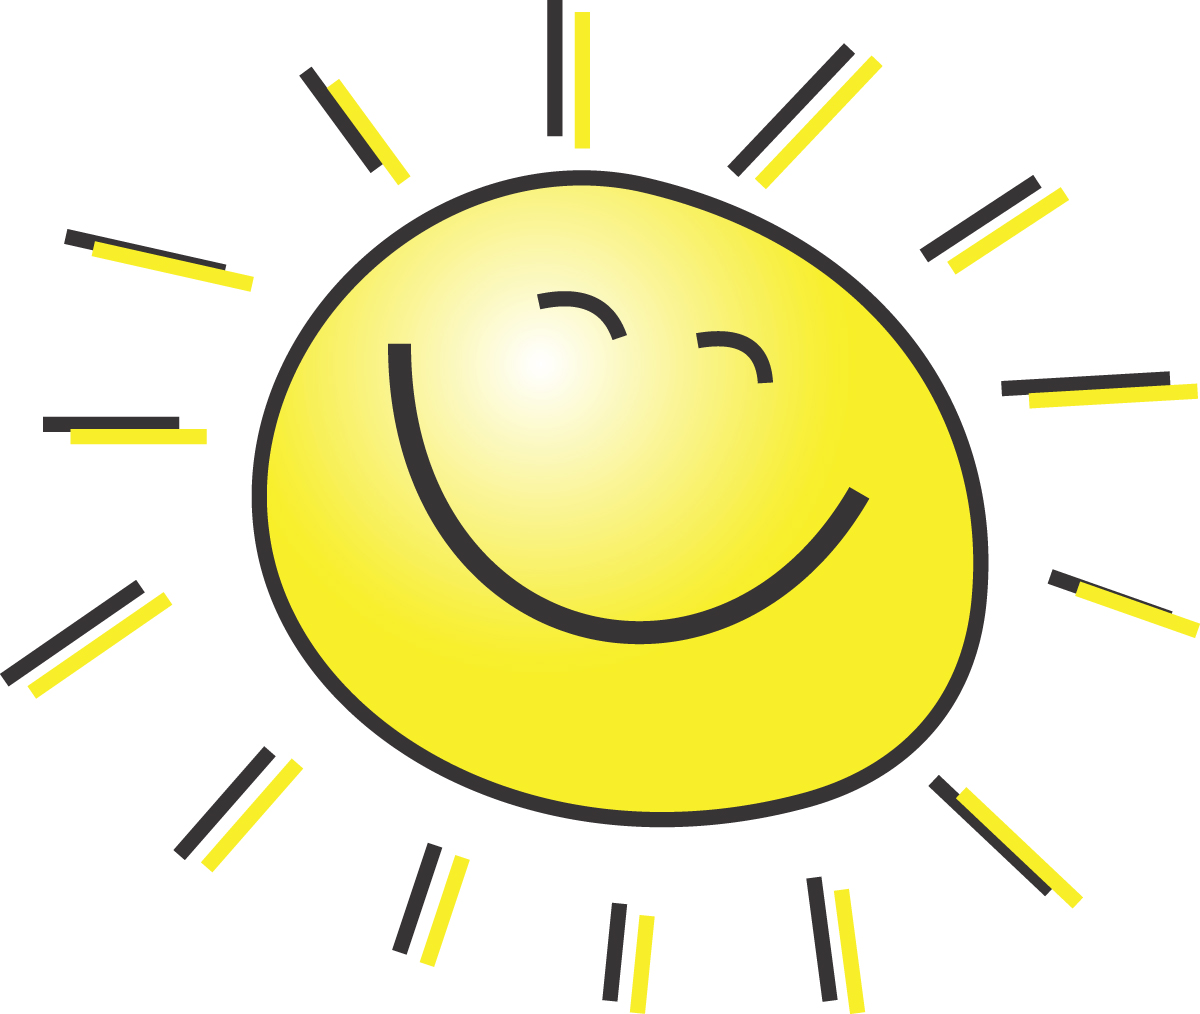 5 free summer clipart illustration of a happy smiling sun Simple Abundance Exercises Can Change Your Mindset